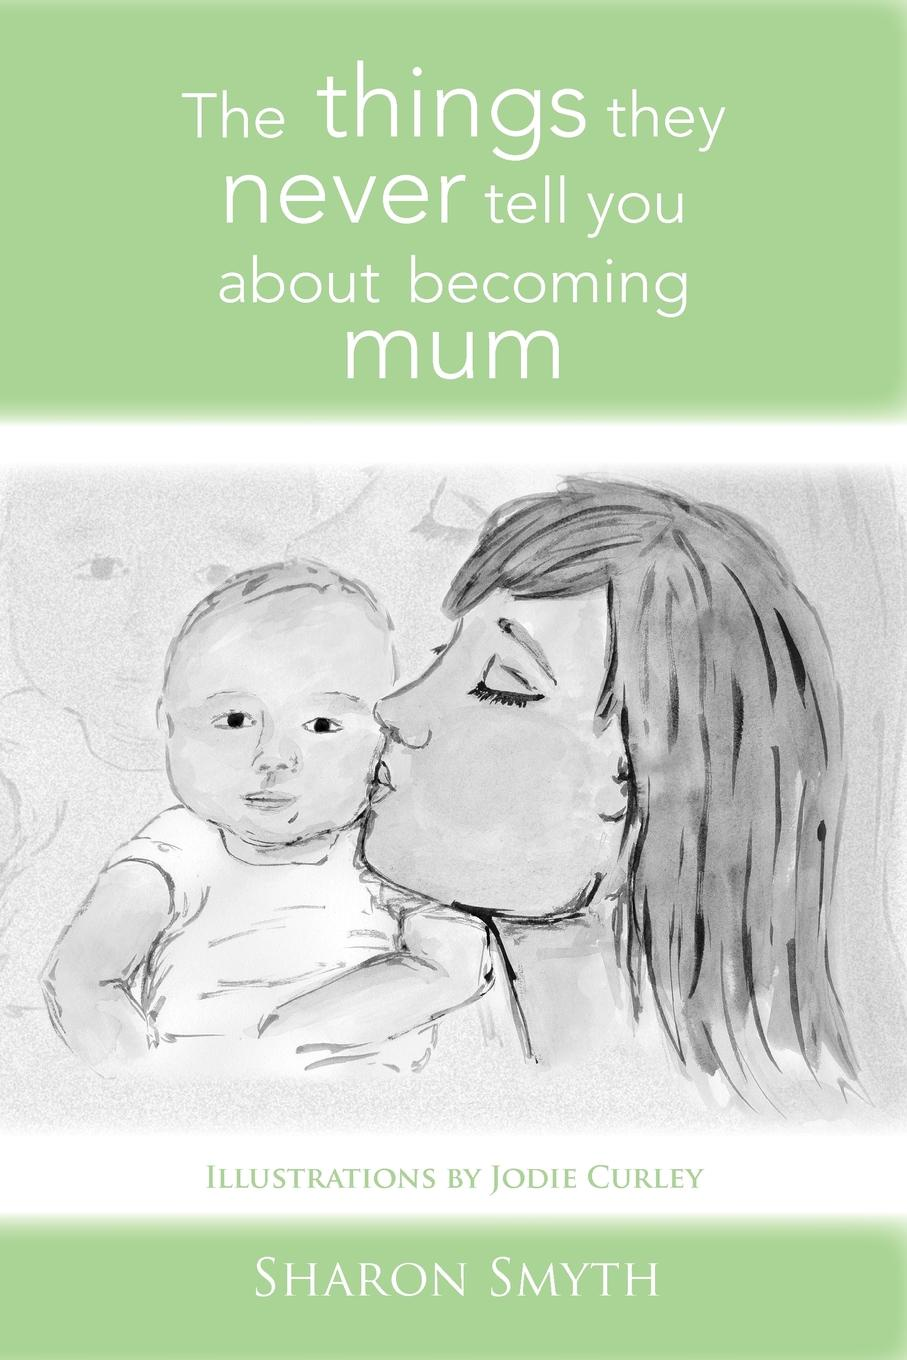 Sharon Smyth The things they never tell you about becoming mum maria m bowe warfare the things they never tell you about part 1